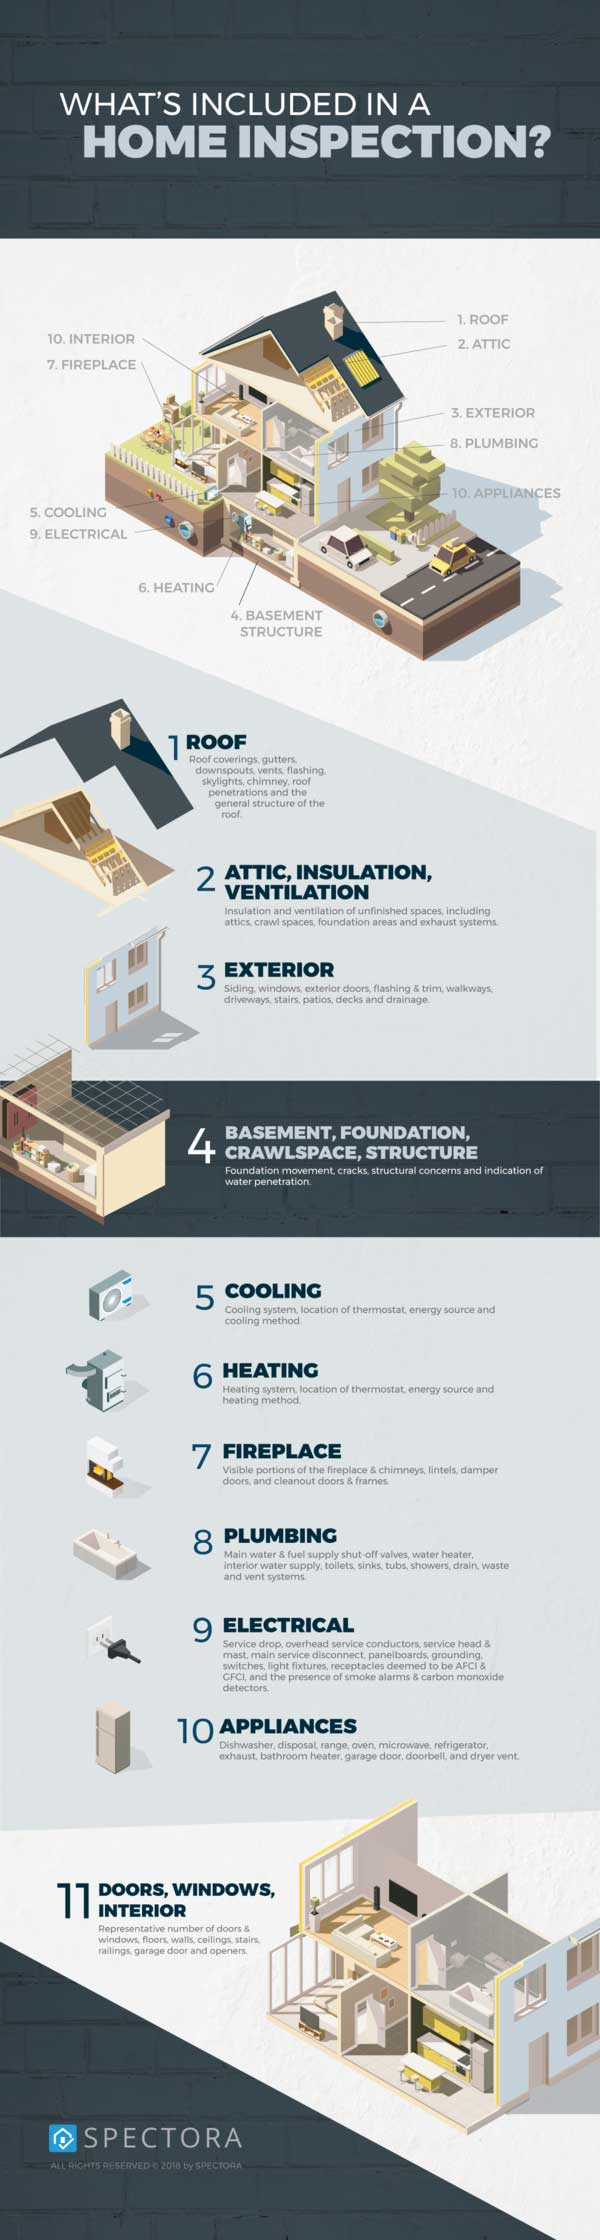 Inspect-O-Graff, LLC What's included in a home inspection infographic